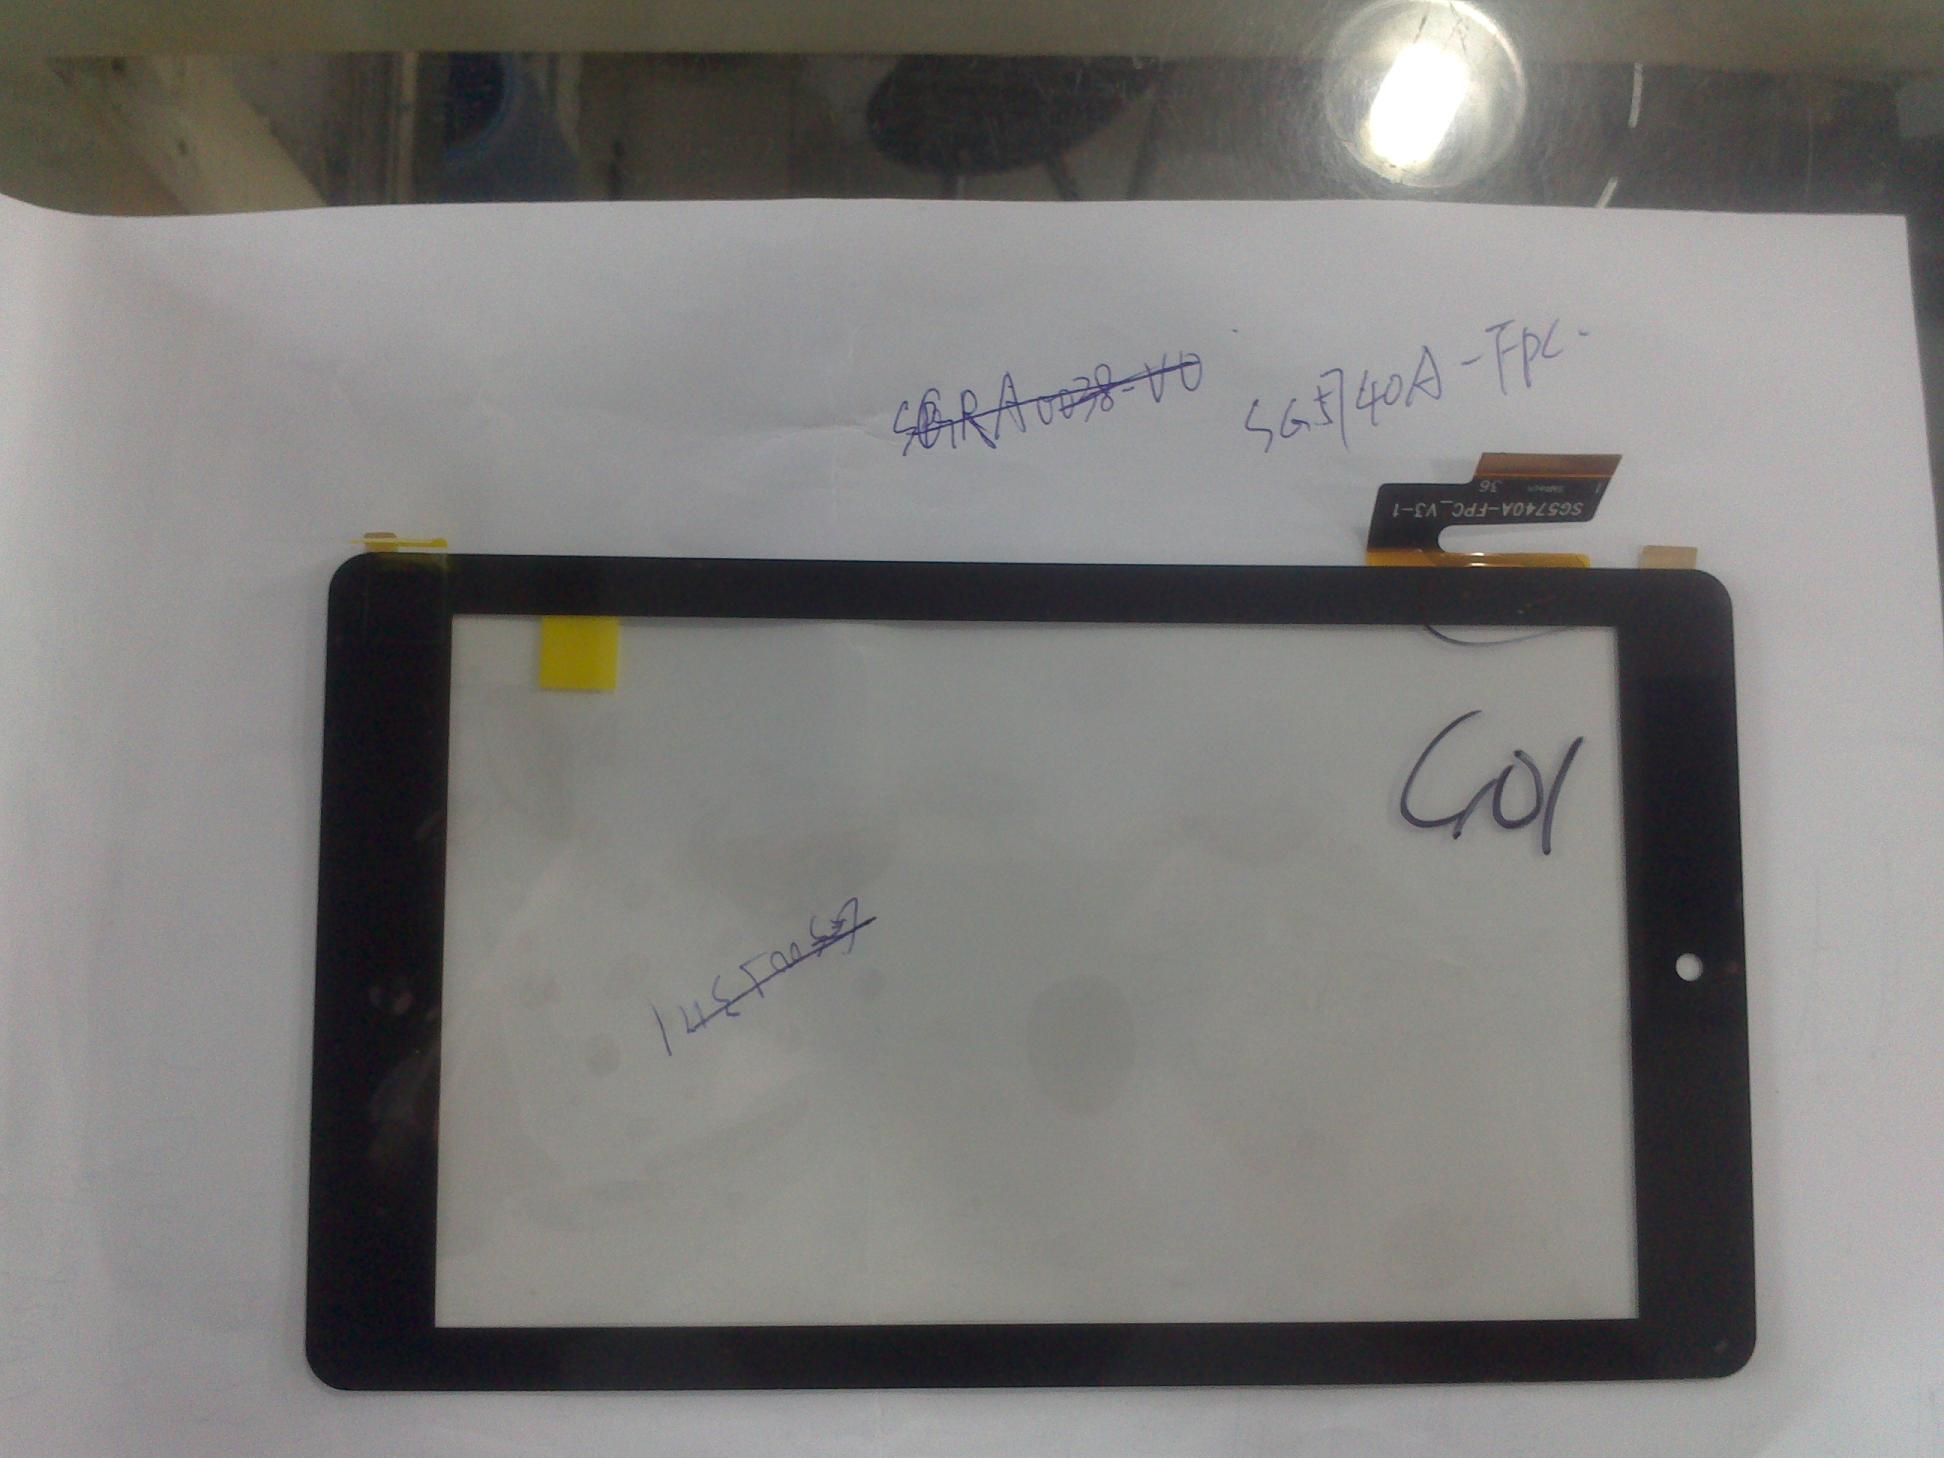 Запчасти для мобильных телефонов 7 inch new handwriting Tablet capacitive touch screen screen screen number is sg5740a/fpc_v3/1 SG5740A-FPC_V3-1 7 inch tablet screen for dp070211 f1 touch screen digitizer sensor glass touch panel replacement parts high quality black